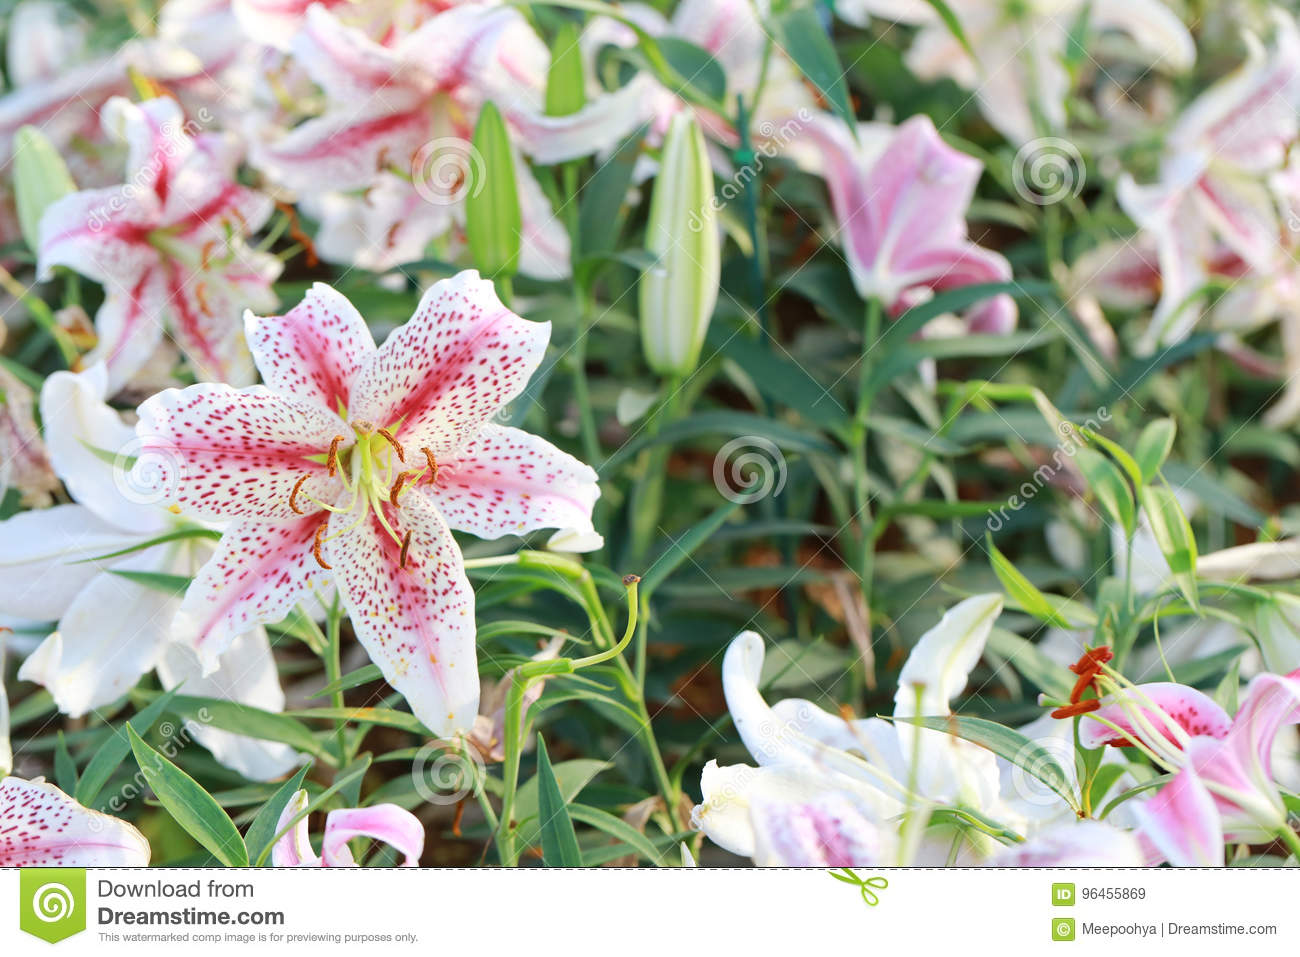 Lily flower of white mix pink color bloom stock image image of royalty free stock photo izmirmasajfo Choice Image